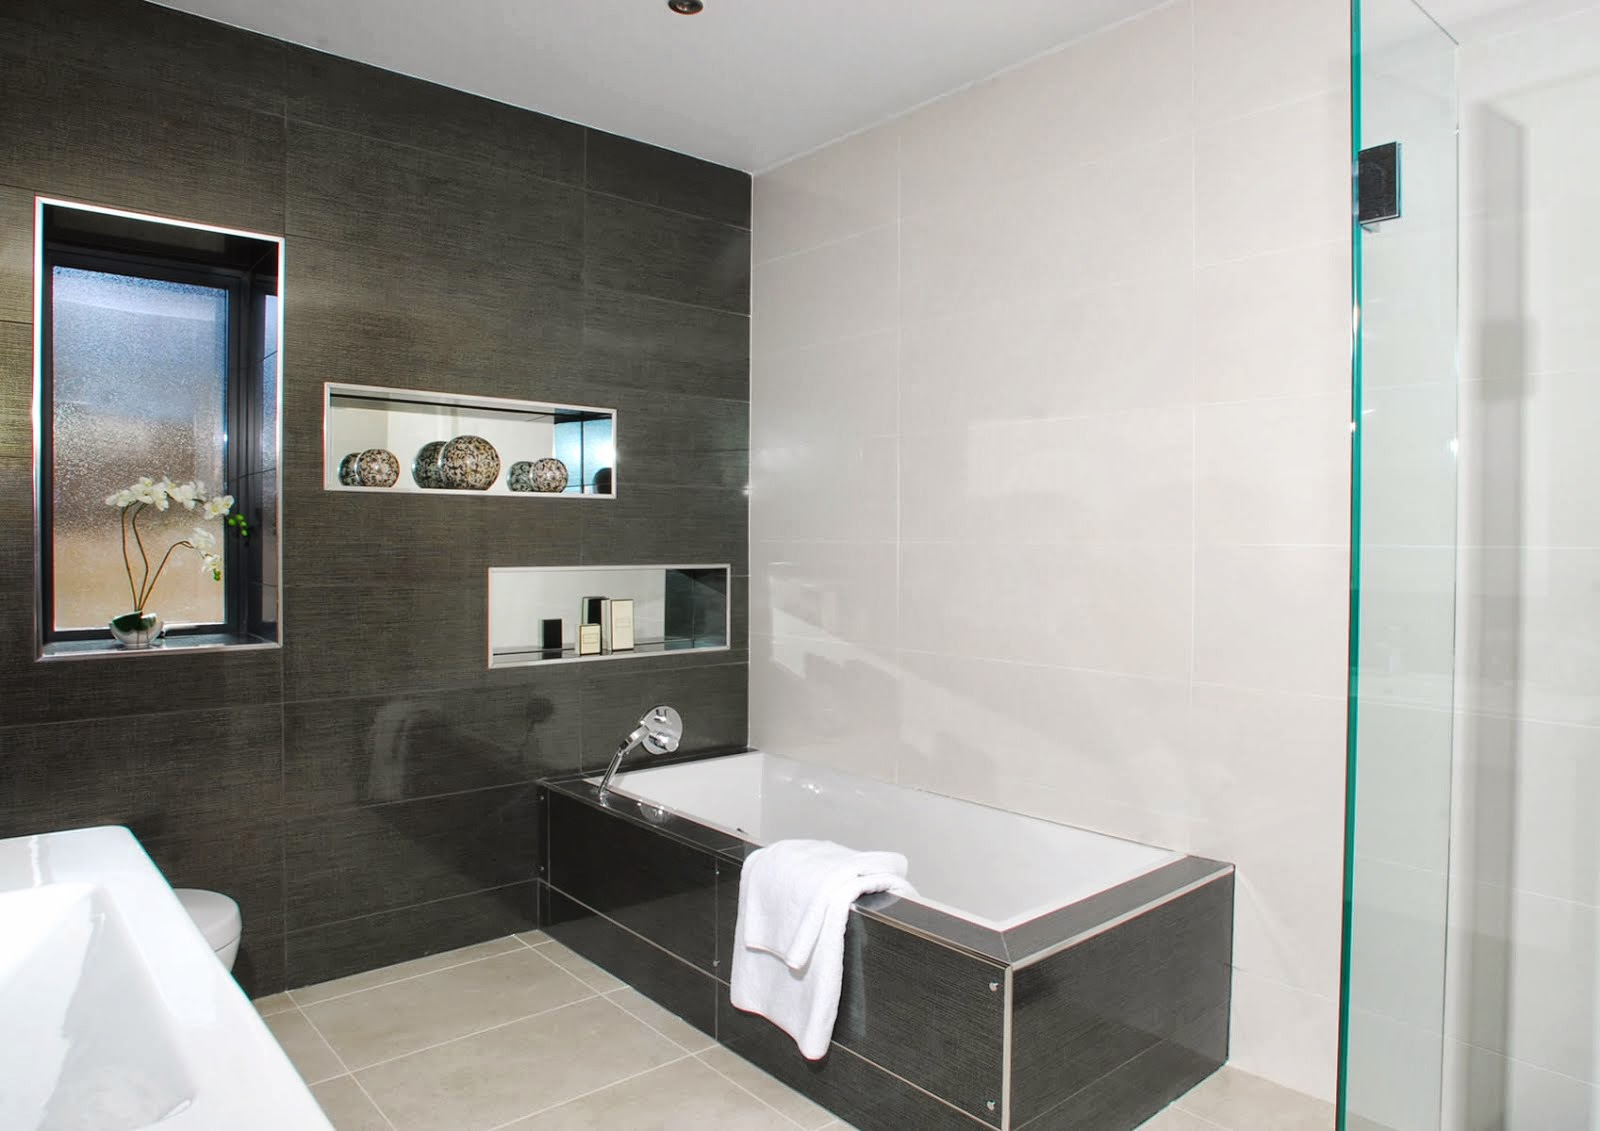 Bathroom design ideas uk - Bathroom design ...